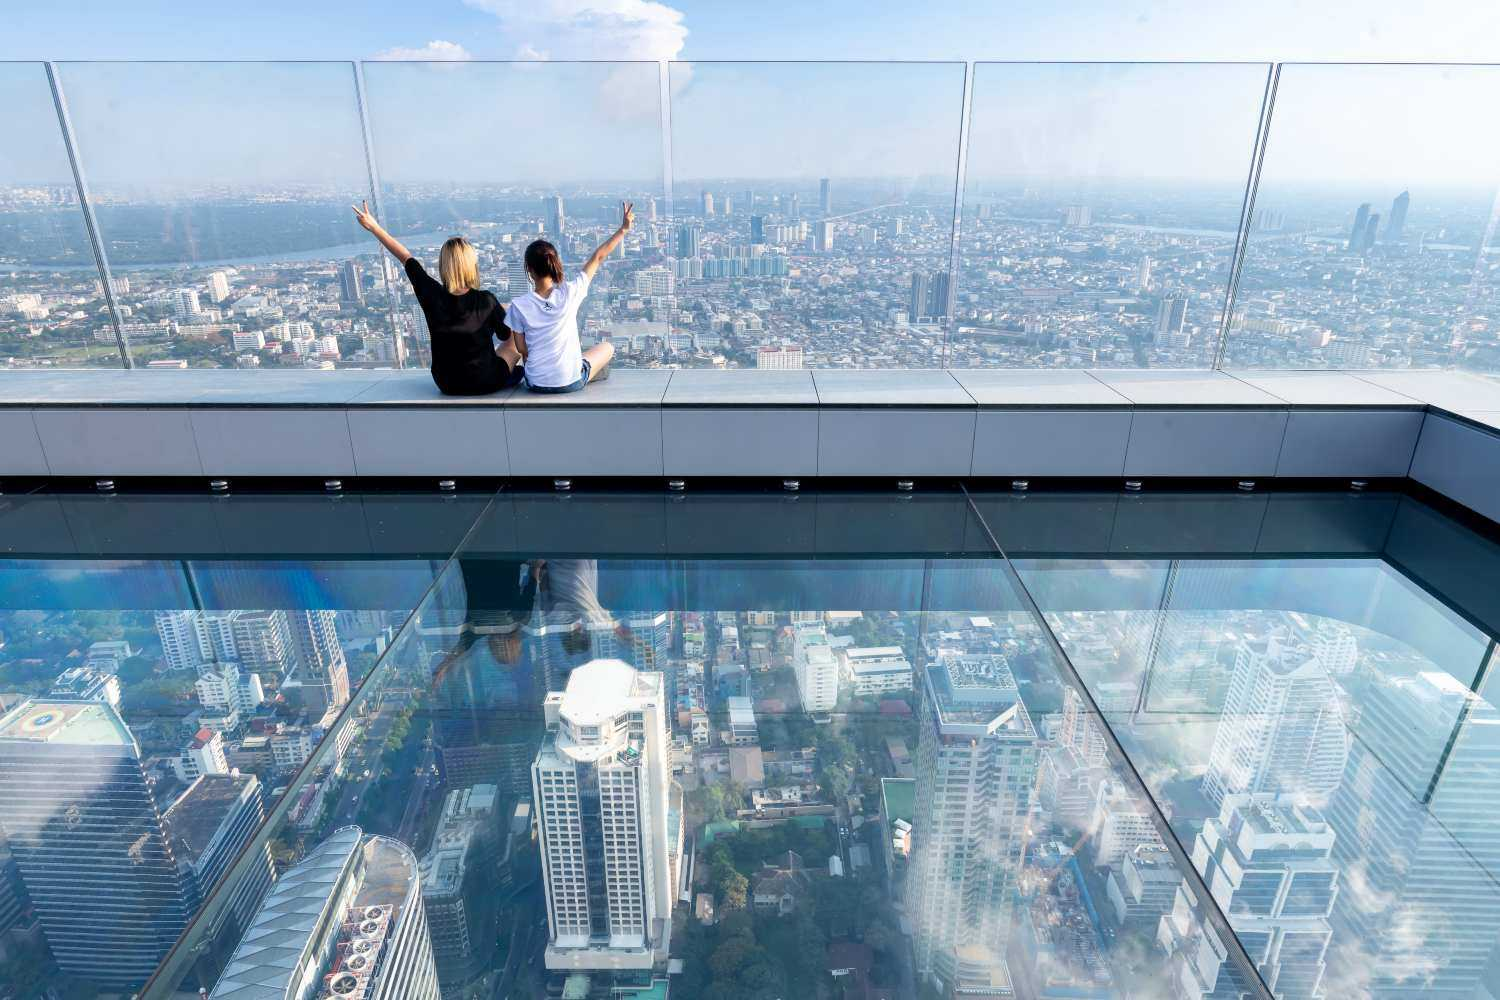 De SkyWalk van het King power Mahanakhon gebouw in Bangkok